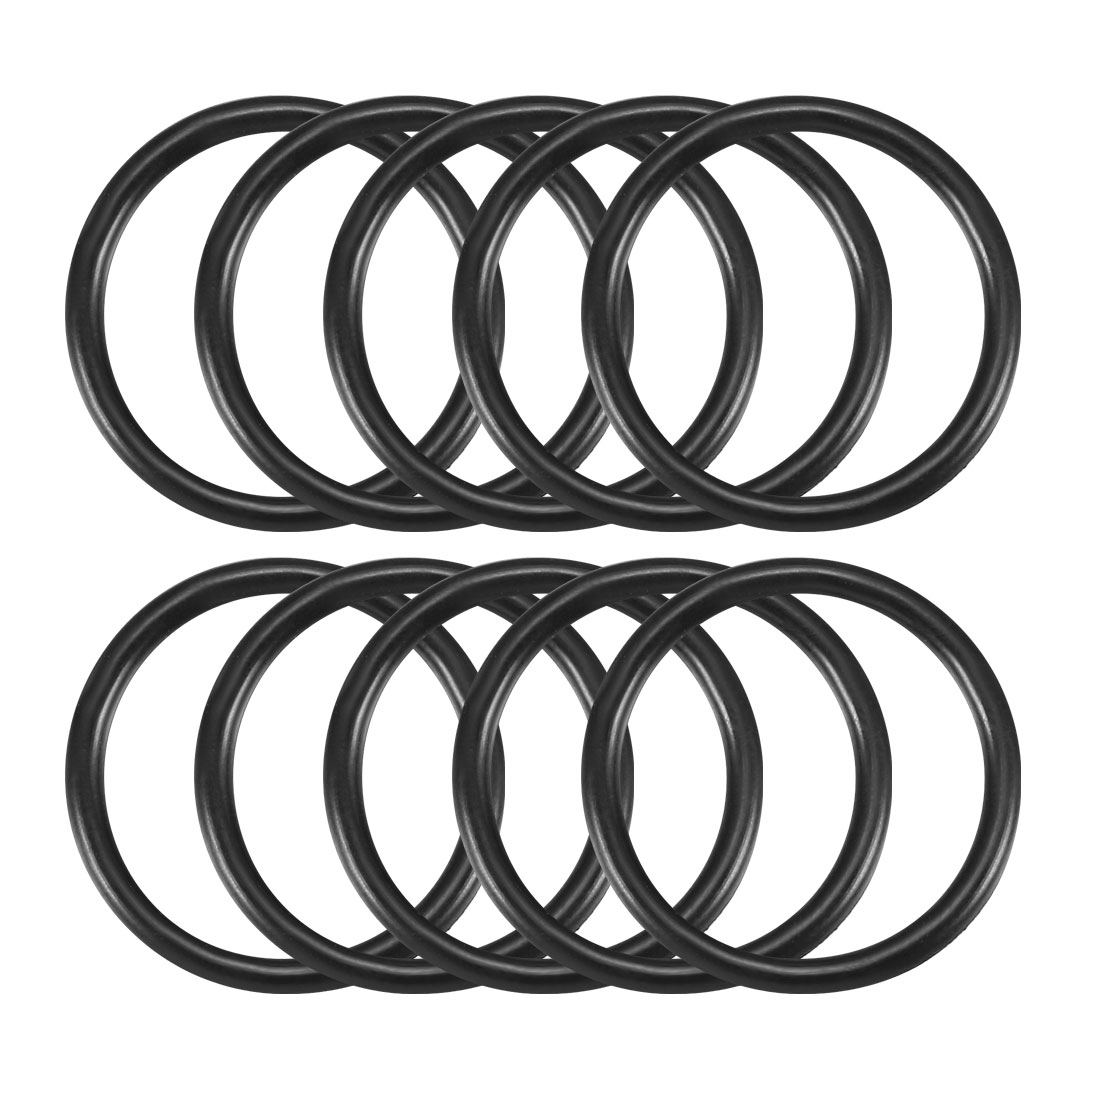 10 Pcs 20mm x 2mm Rubber Sealing Washers Oil Filter O Rings Black